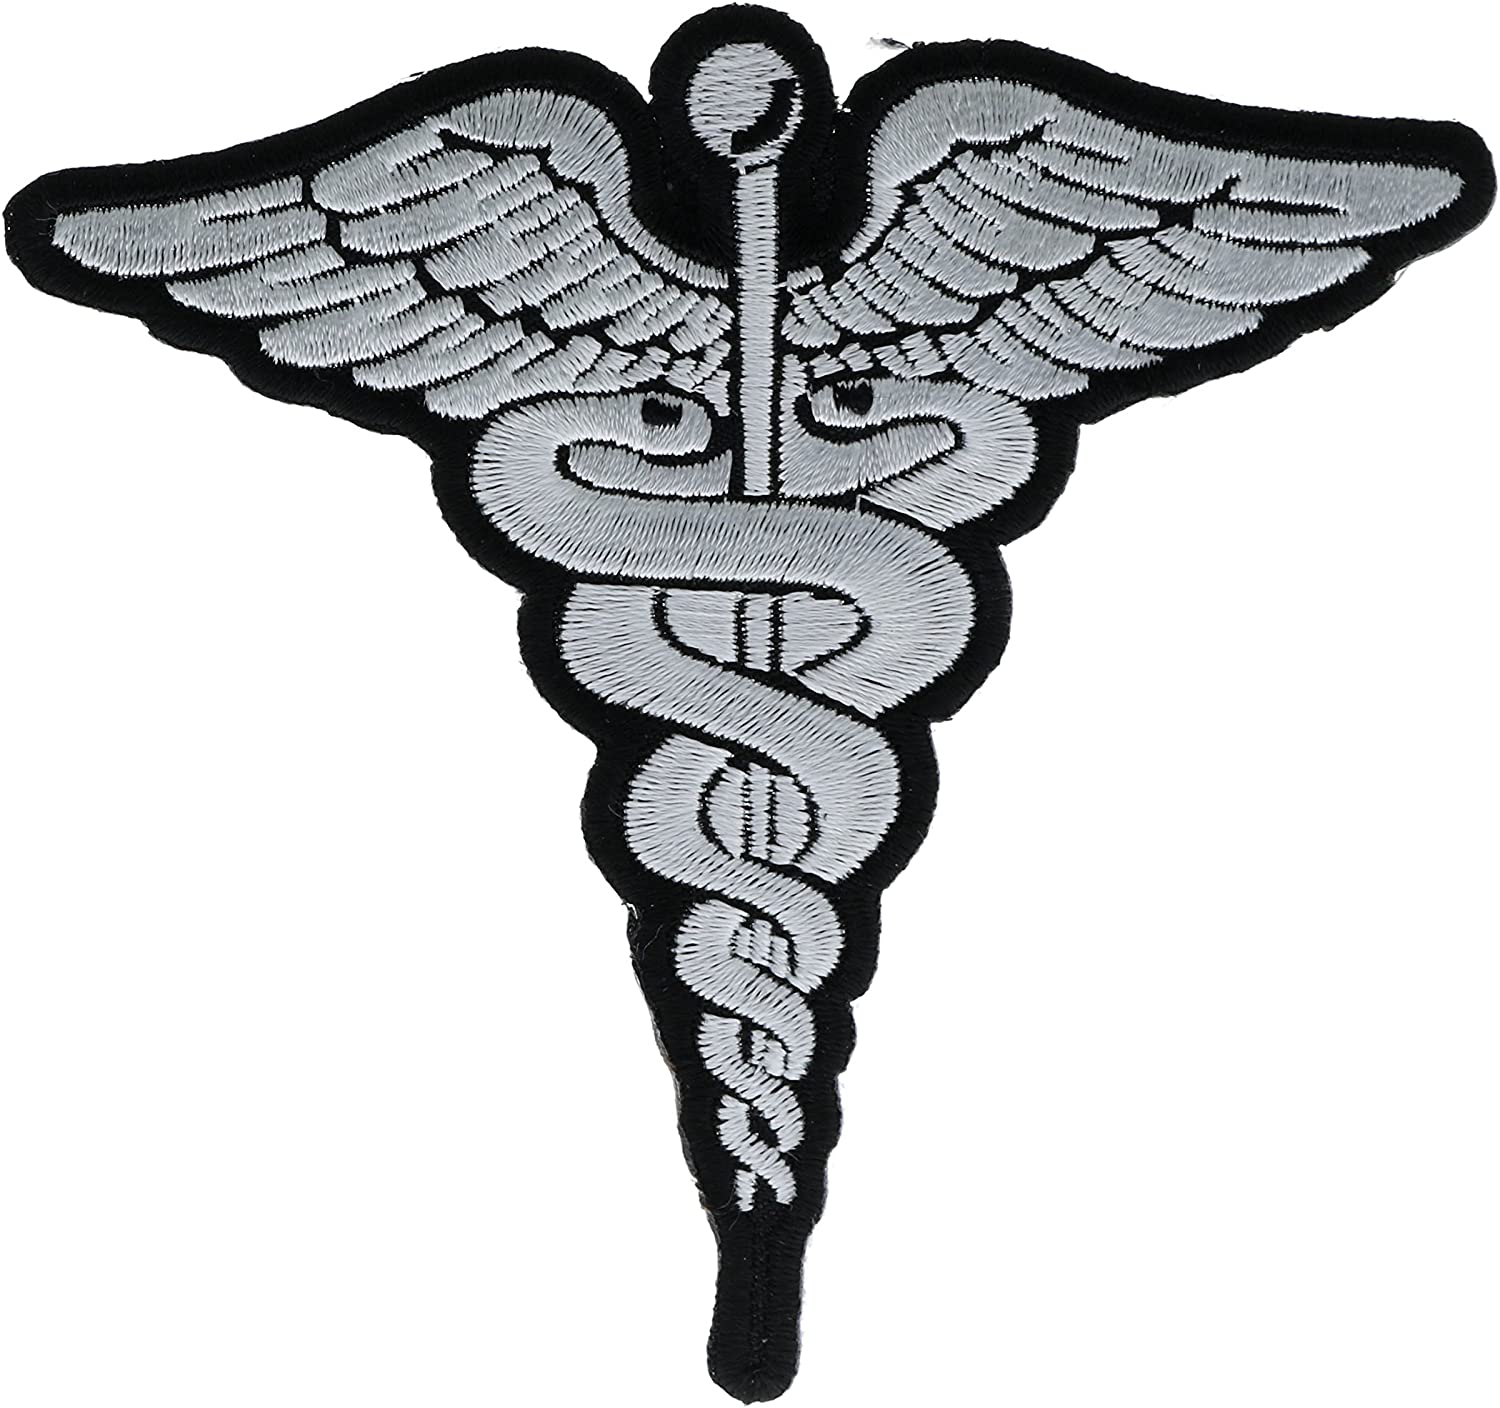 Blue on White Medical Caduceus Embroidered 4 Patch IVANP5466a